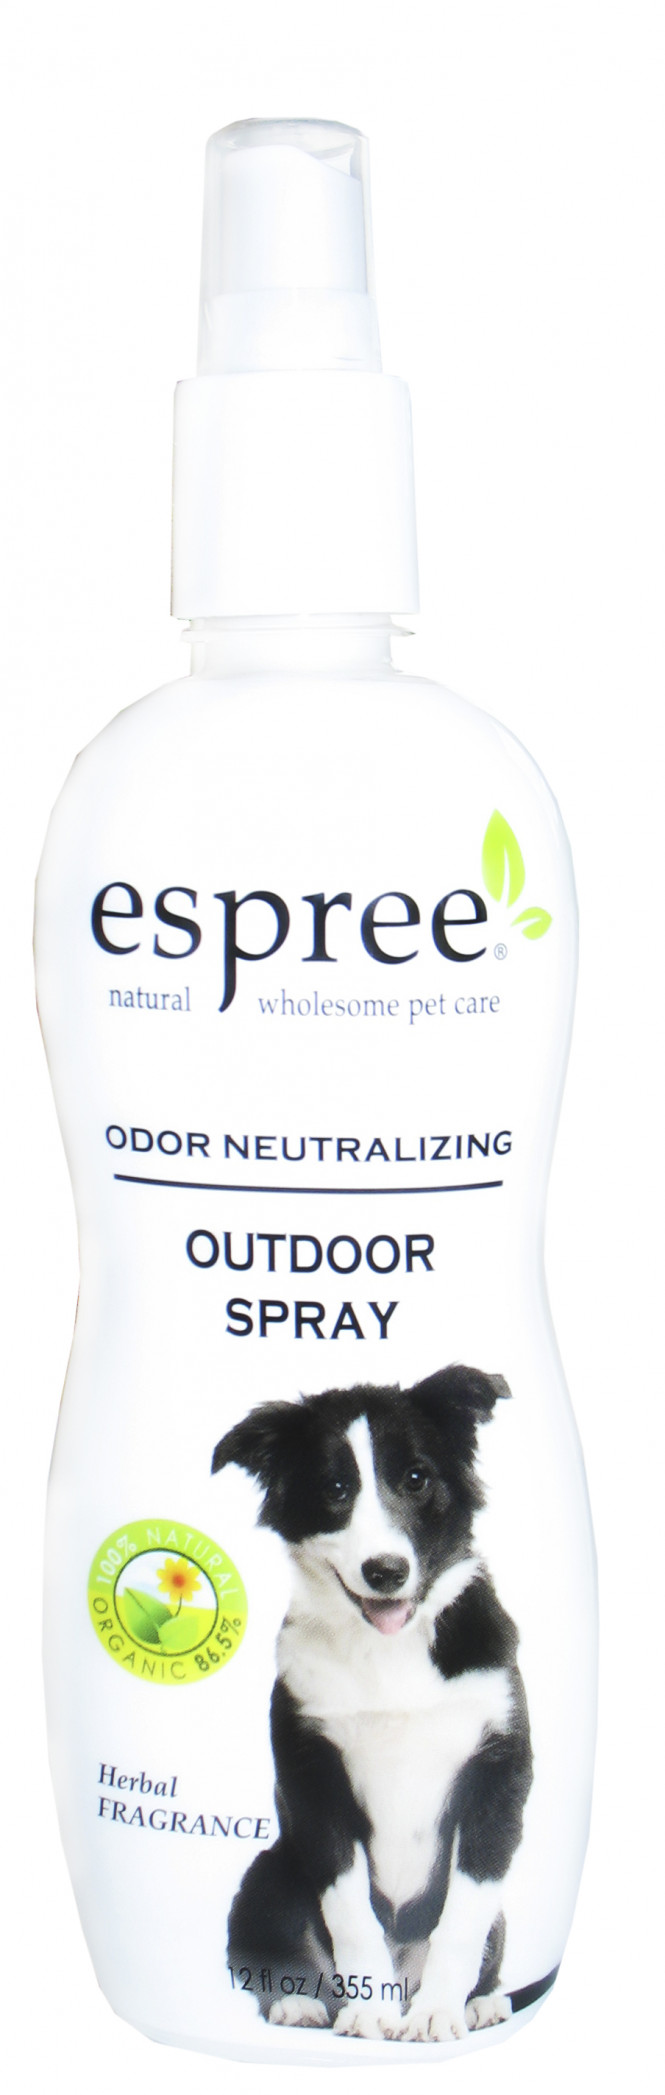 Espree Outdoor Spray